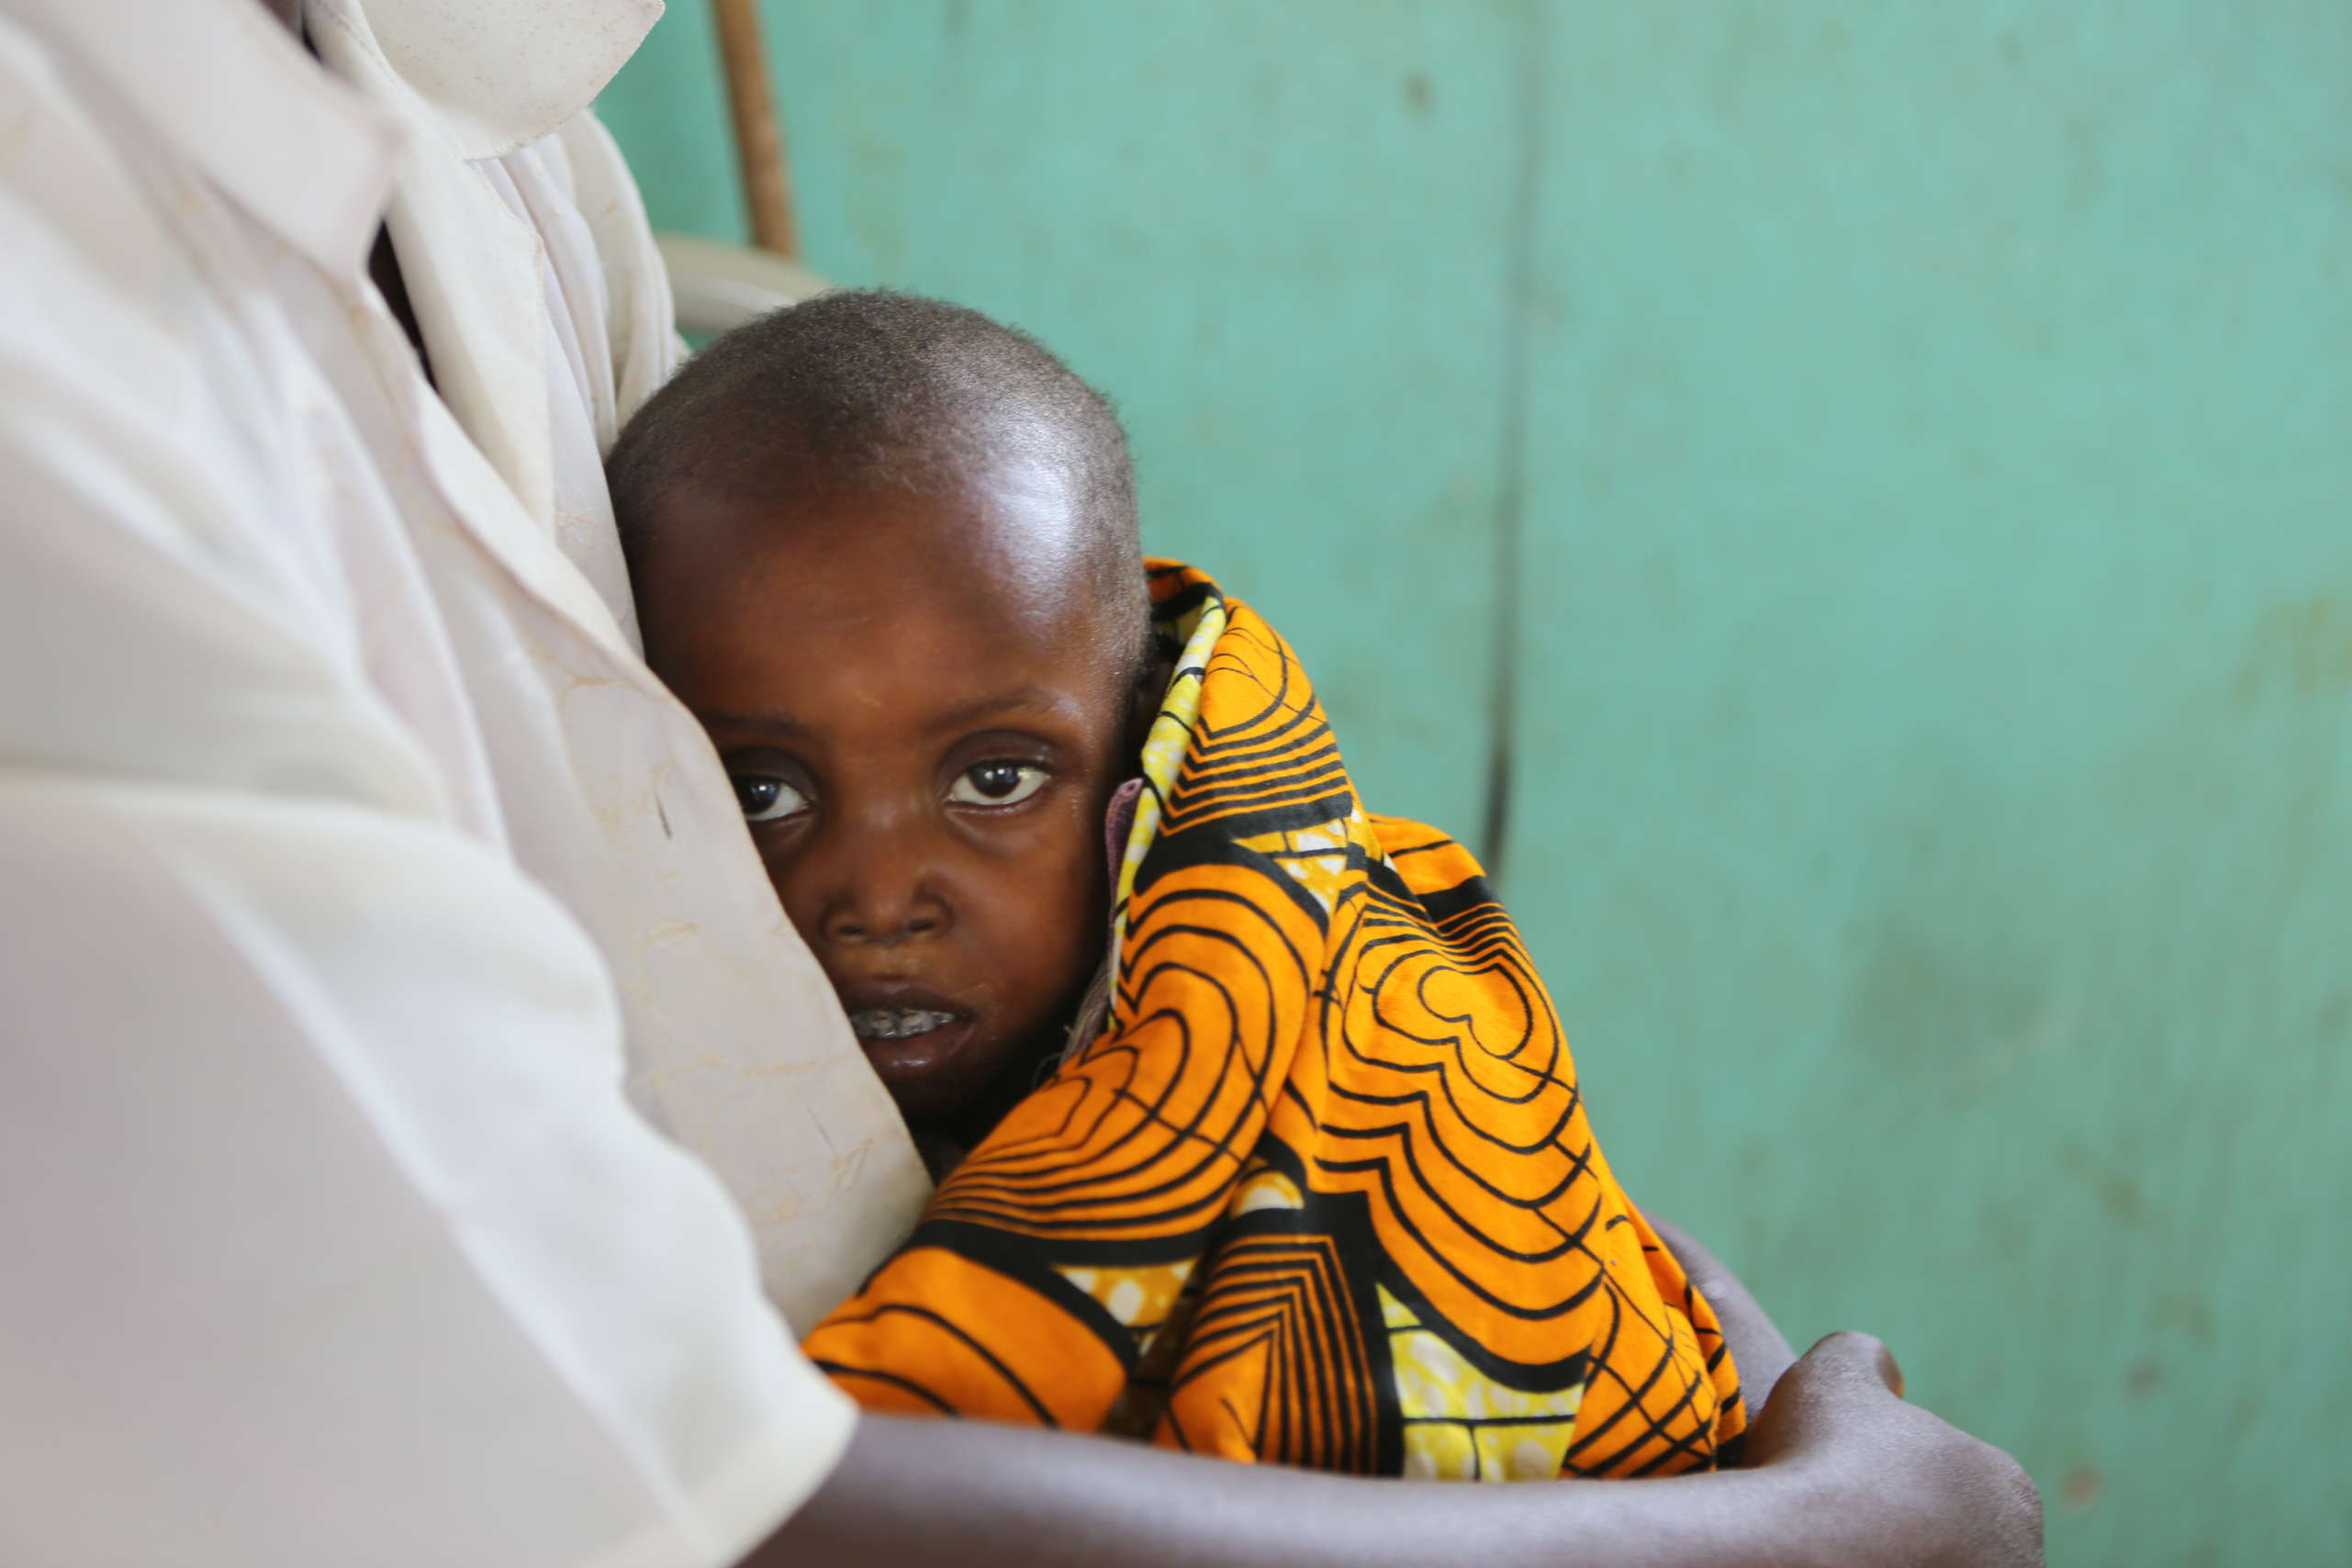 Pierre, four, at Tshilundu referral hospital, Kasia Oriental